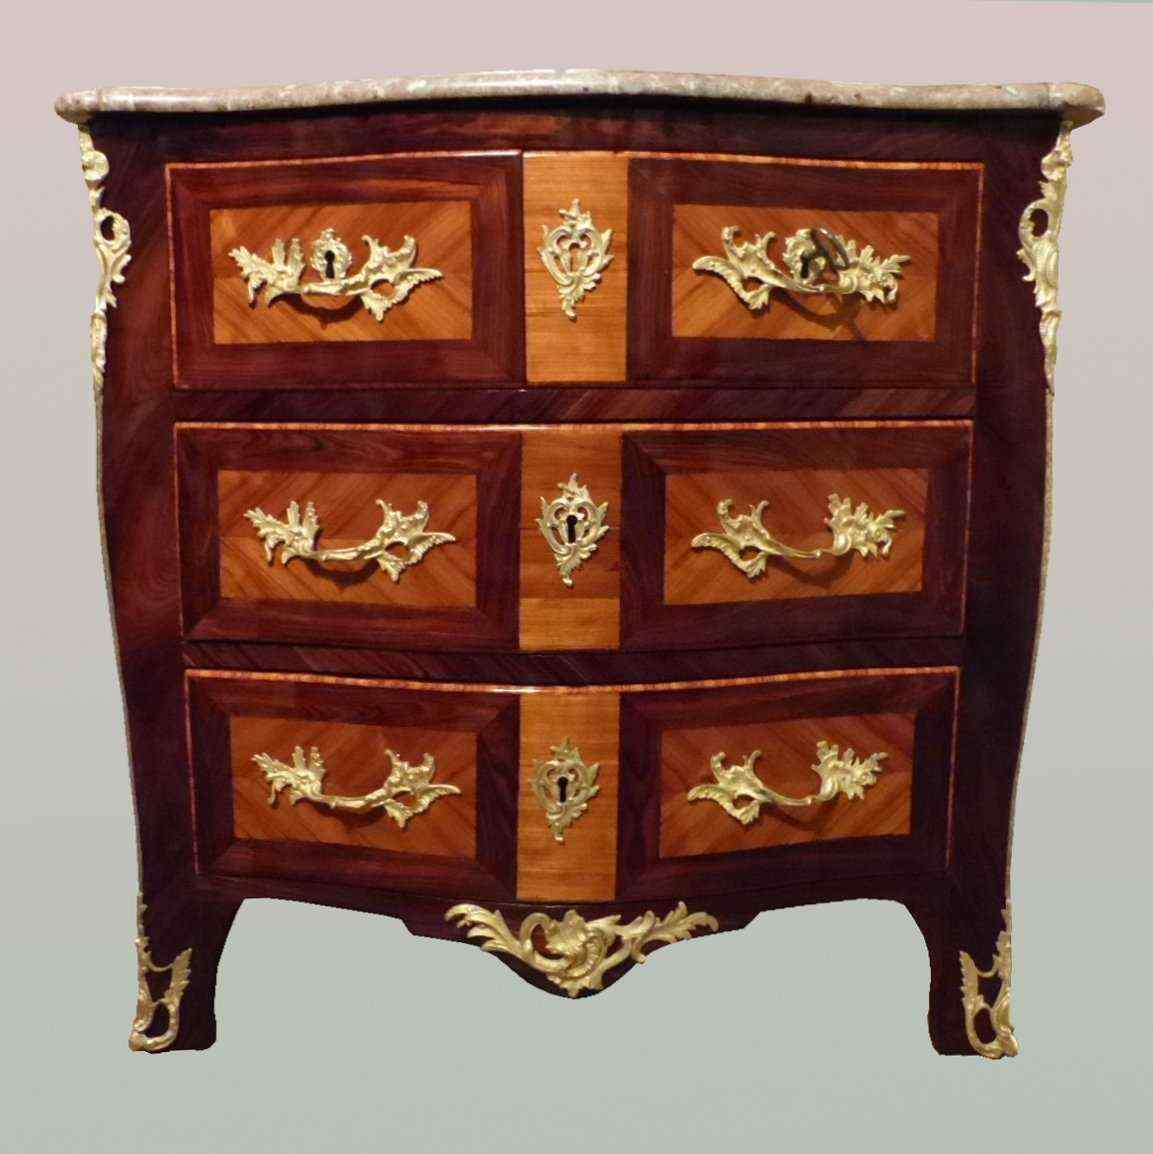 Marquetery commode timbrato JC ELLAUME